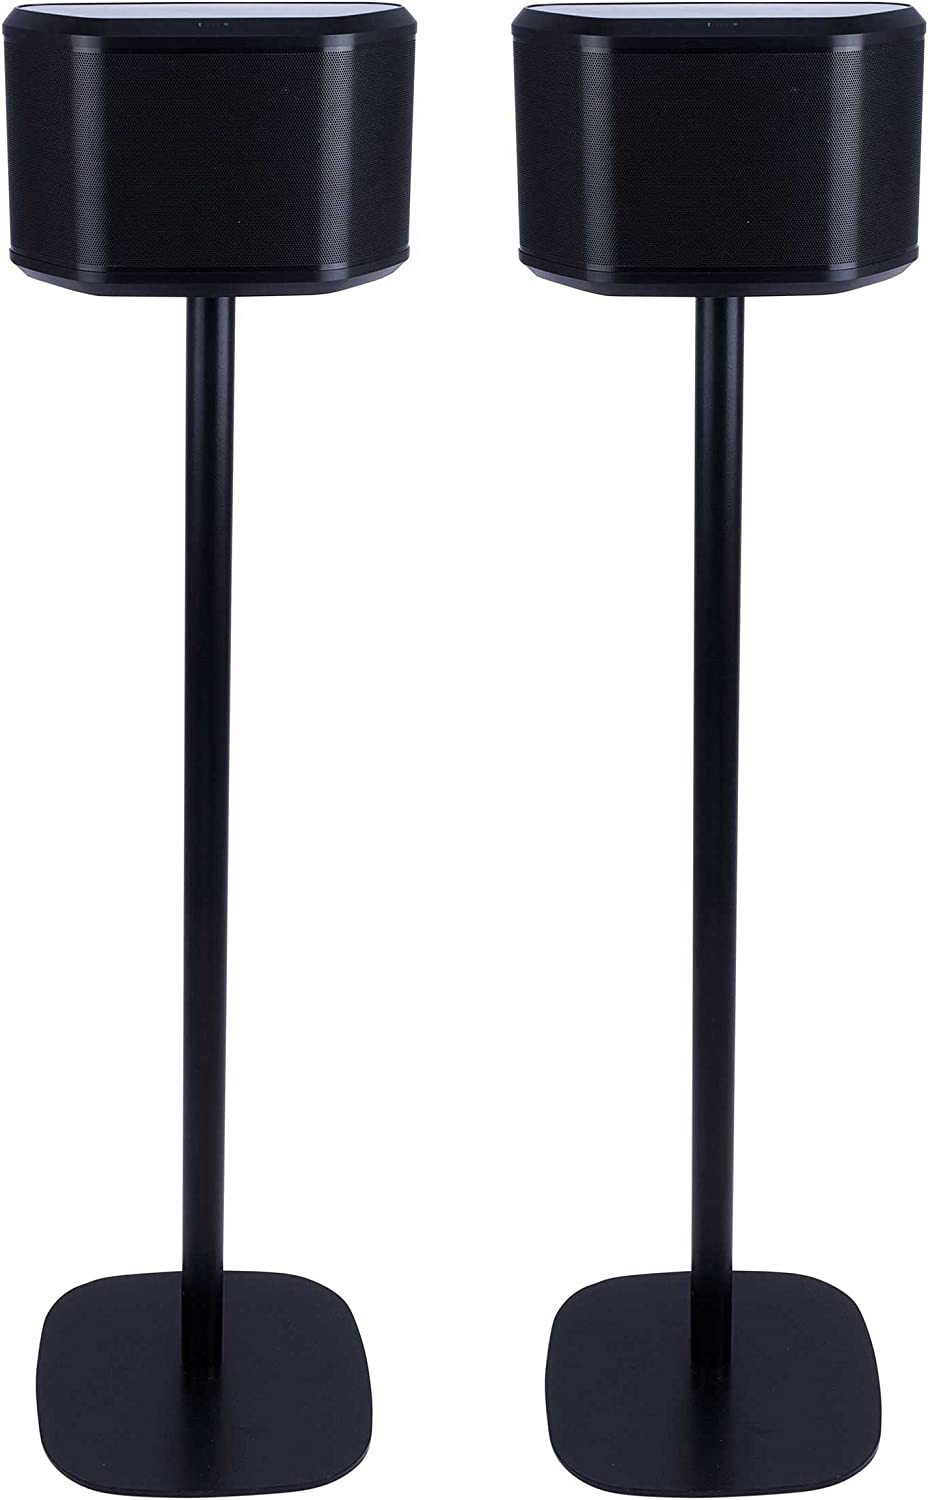 Vebos Floor Stand Yamaha WX-030 Musiccast Black Set en Optimal Experience in Every Room - Allows You to Place Your Yamaha WX-030 Musiccast Exactly Where You Want it - Two Years Warranty